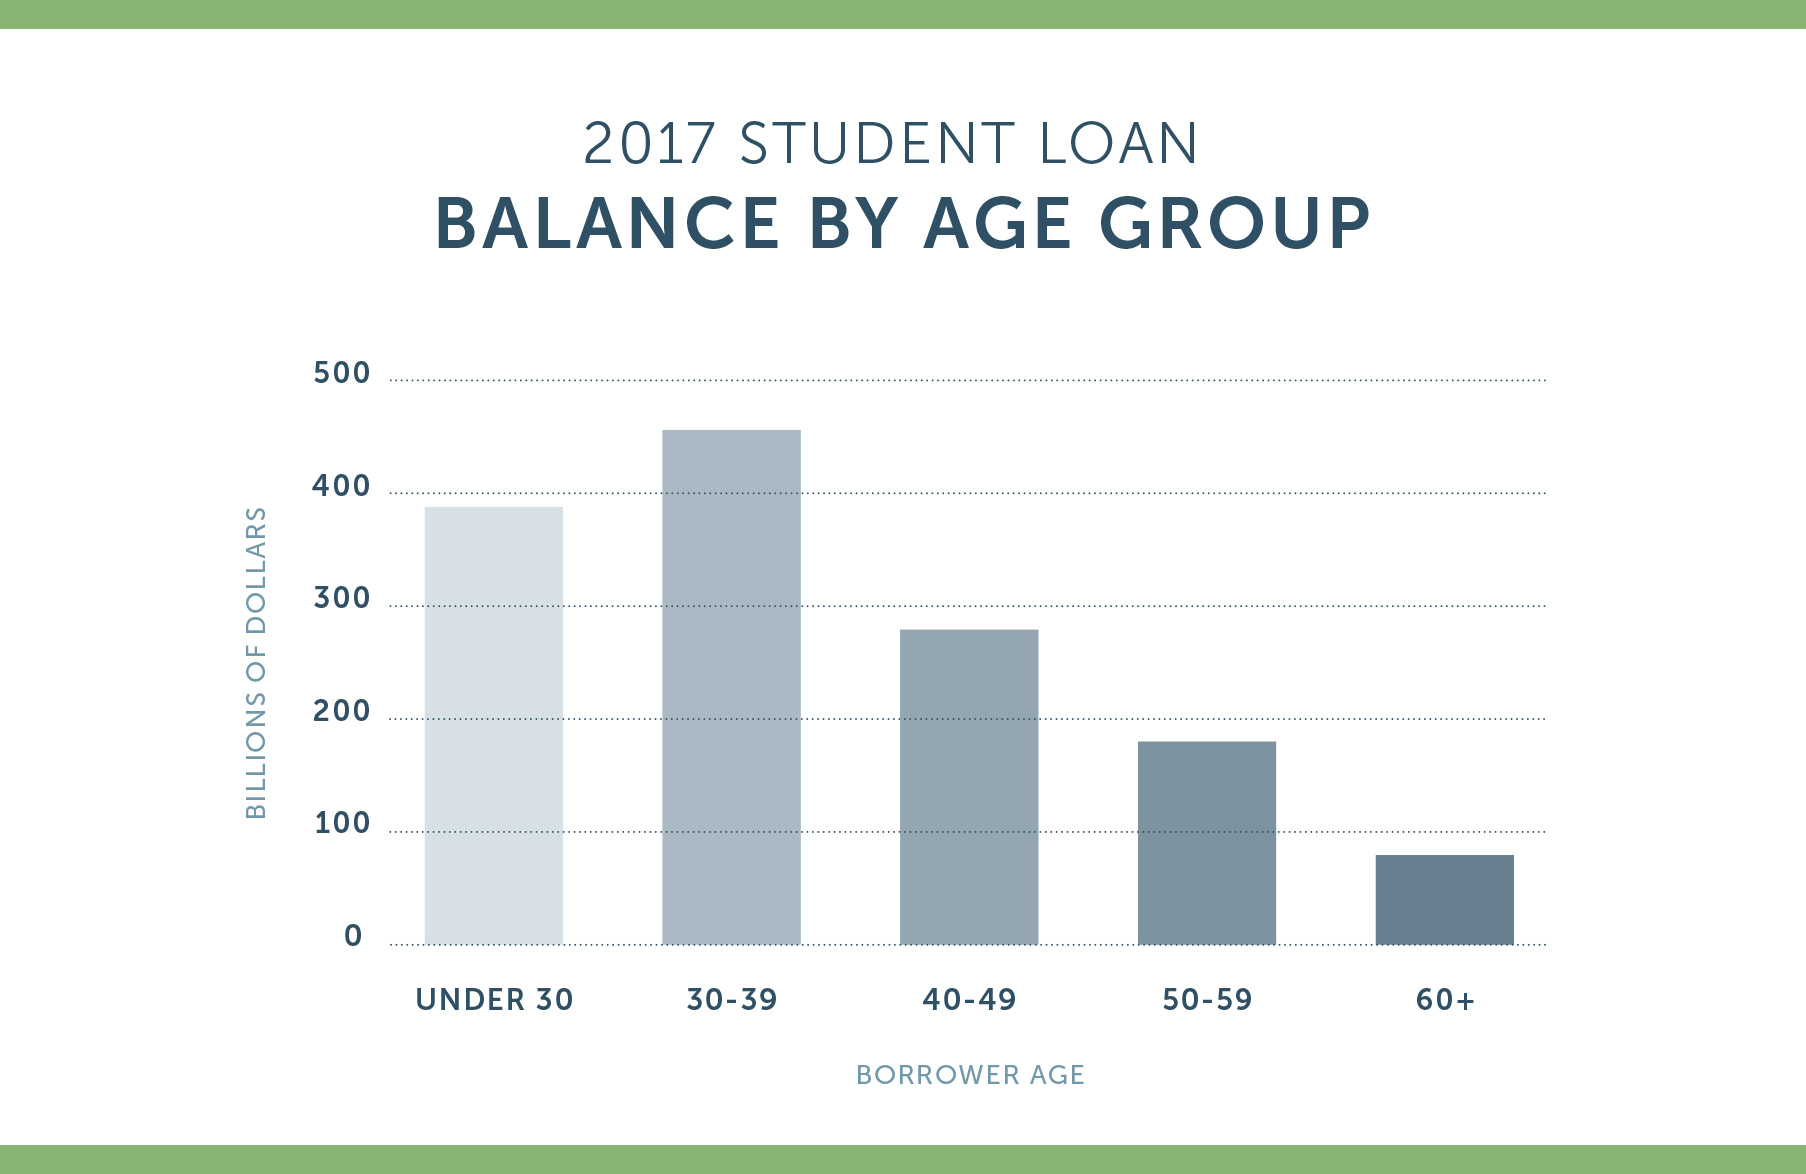 Auto Loan With Bad Credit >> 3 Tips to Escape Student Loan Debt - memoryBlue